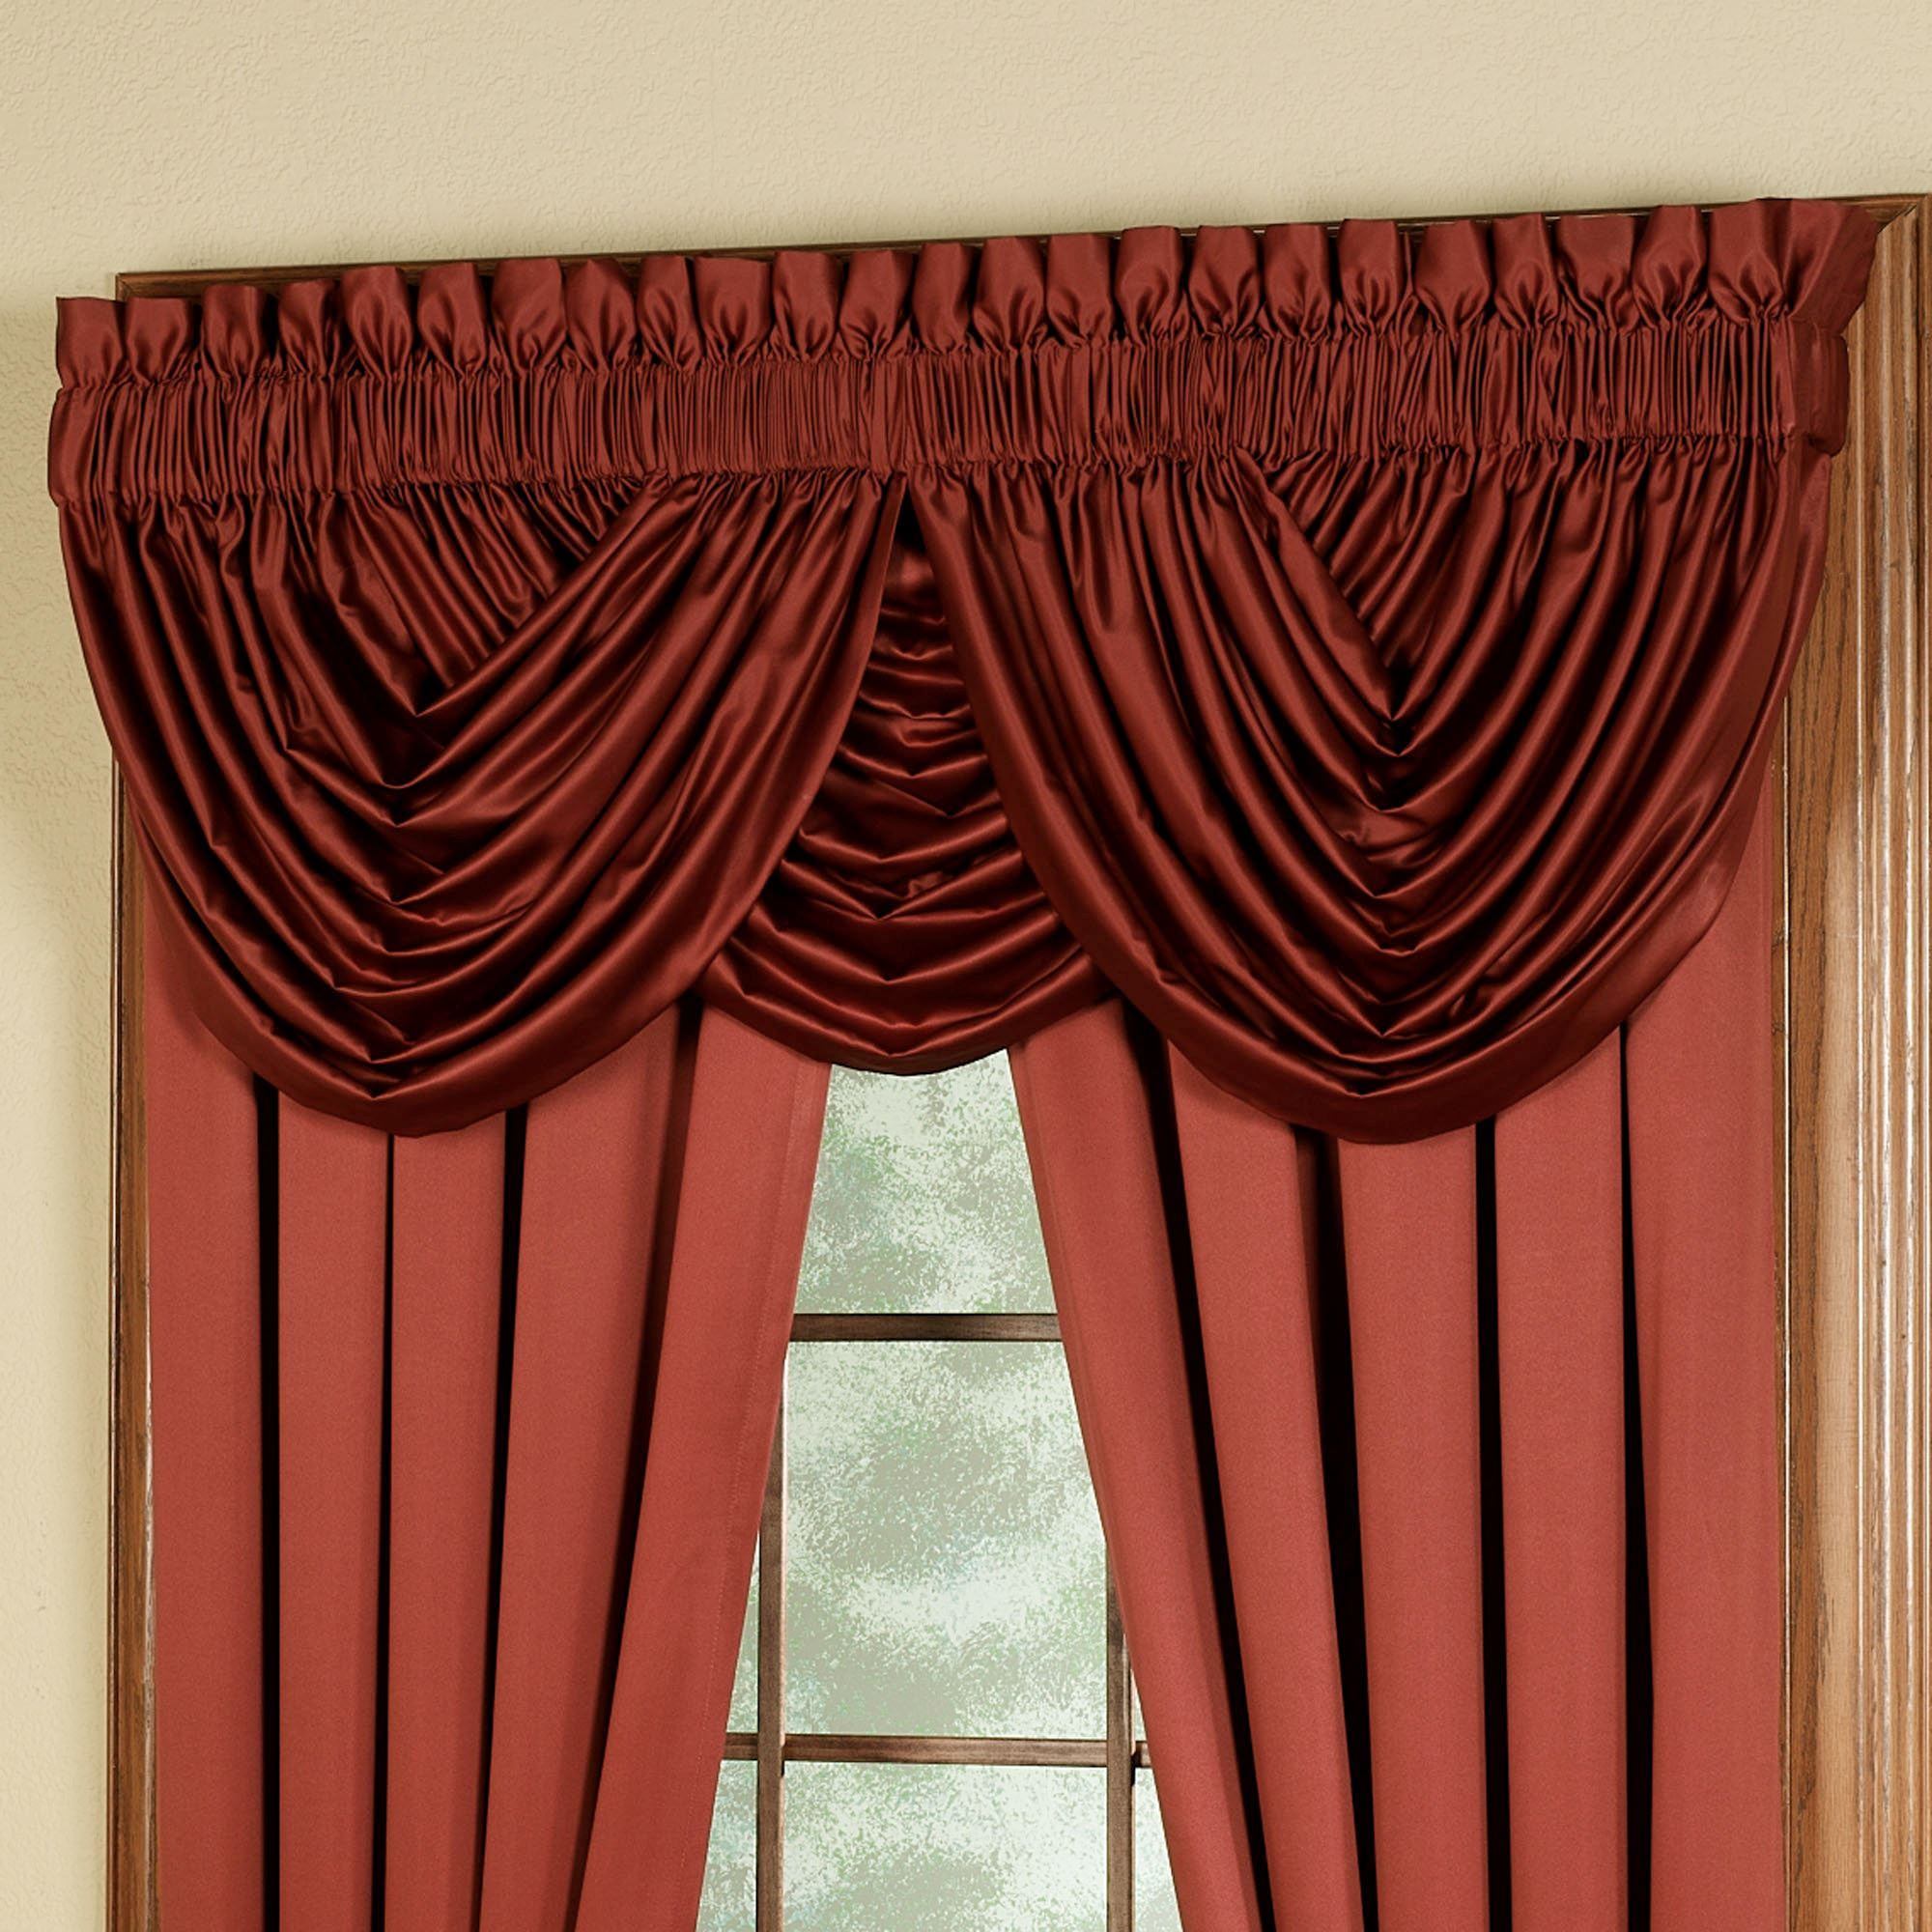 and tiers curtain kitchen curtains valances treatments cafe white waverly panels decoration drapery grey coverings bathroom x tier gray drapes sheer lace window door valance